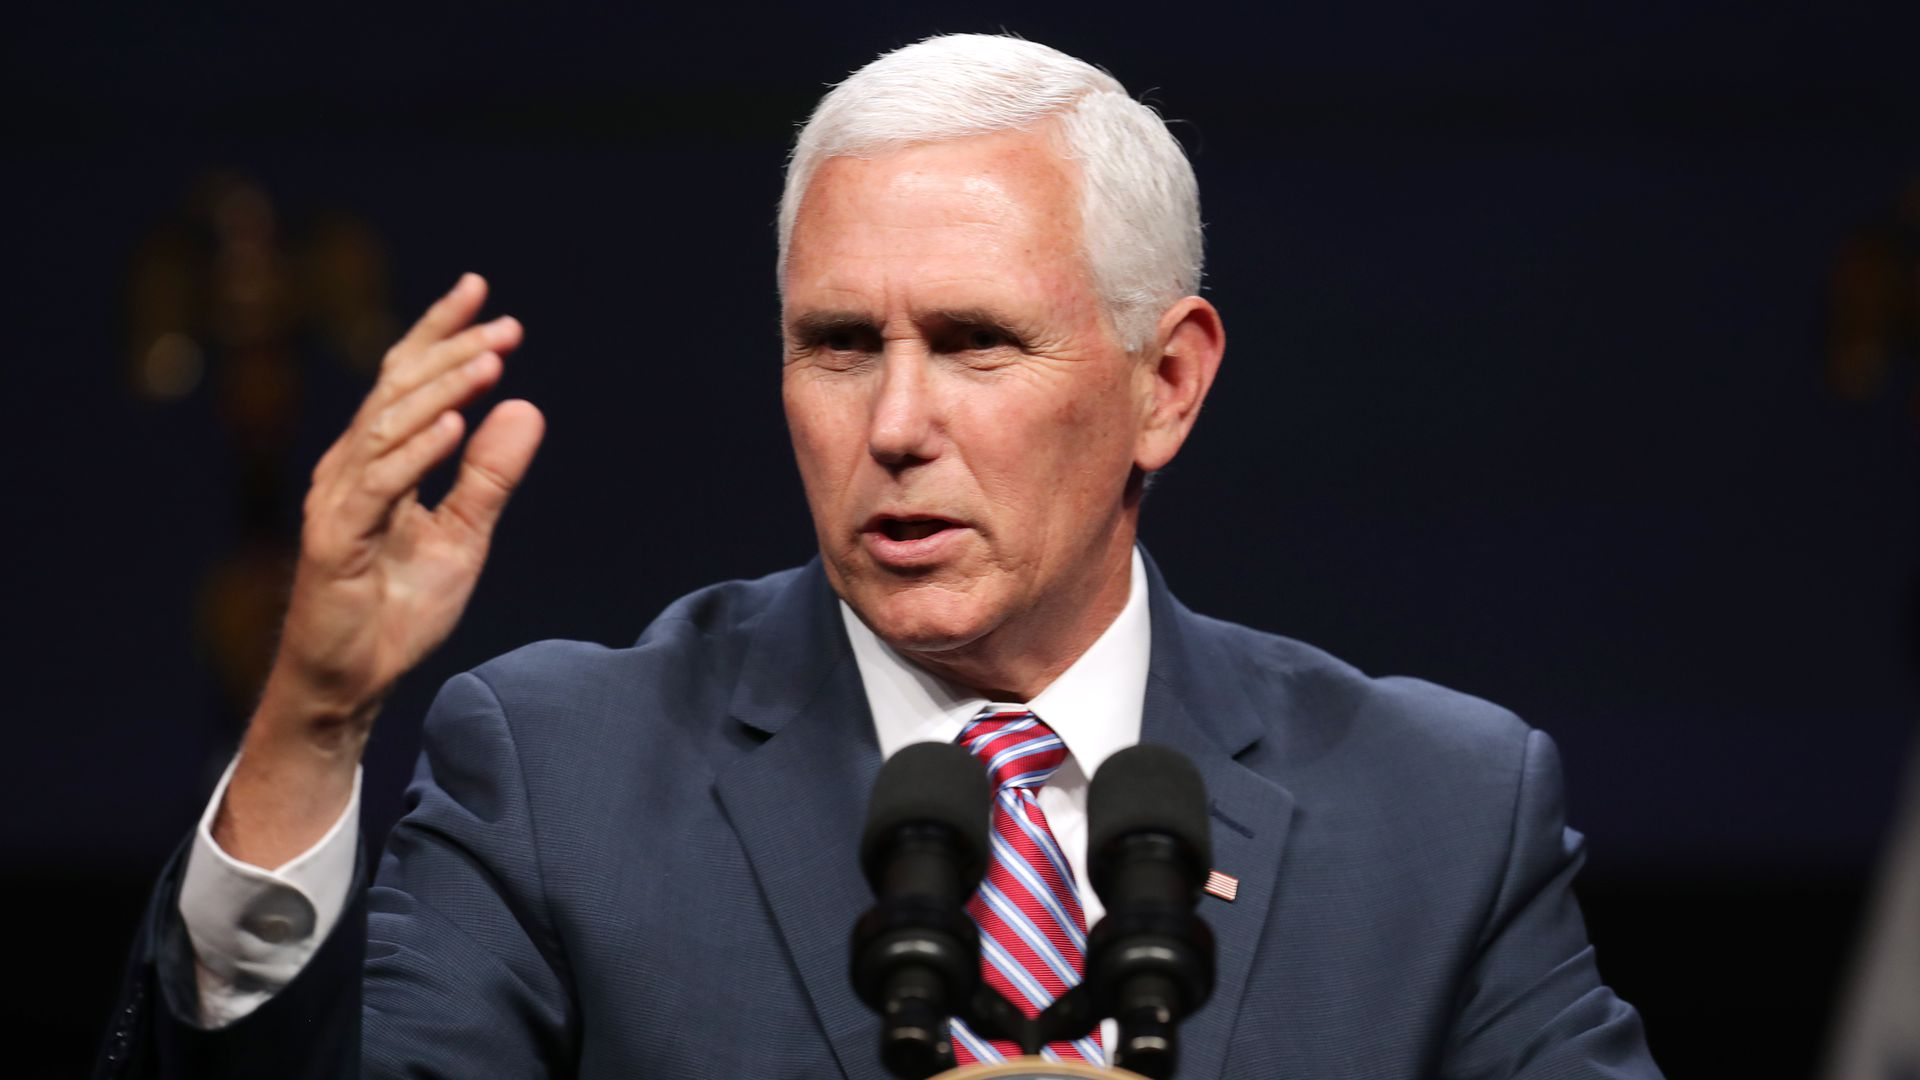 """Pence tells students to prepare for """"anti-Christian persecution"""" from """"secular left"""""""